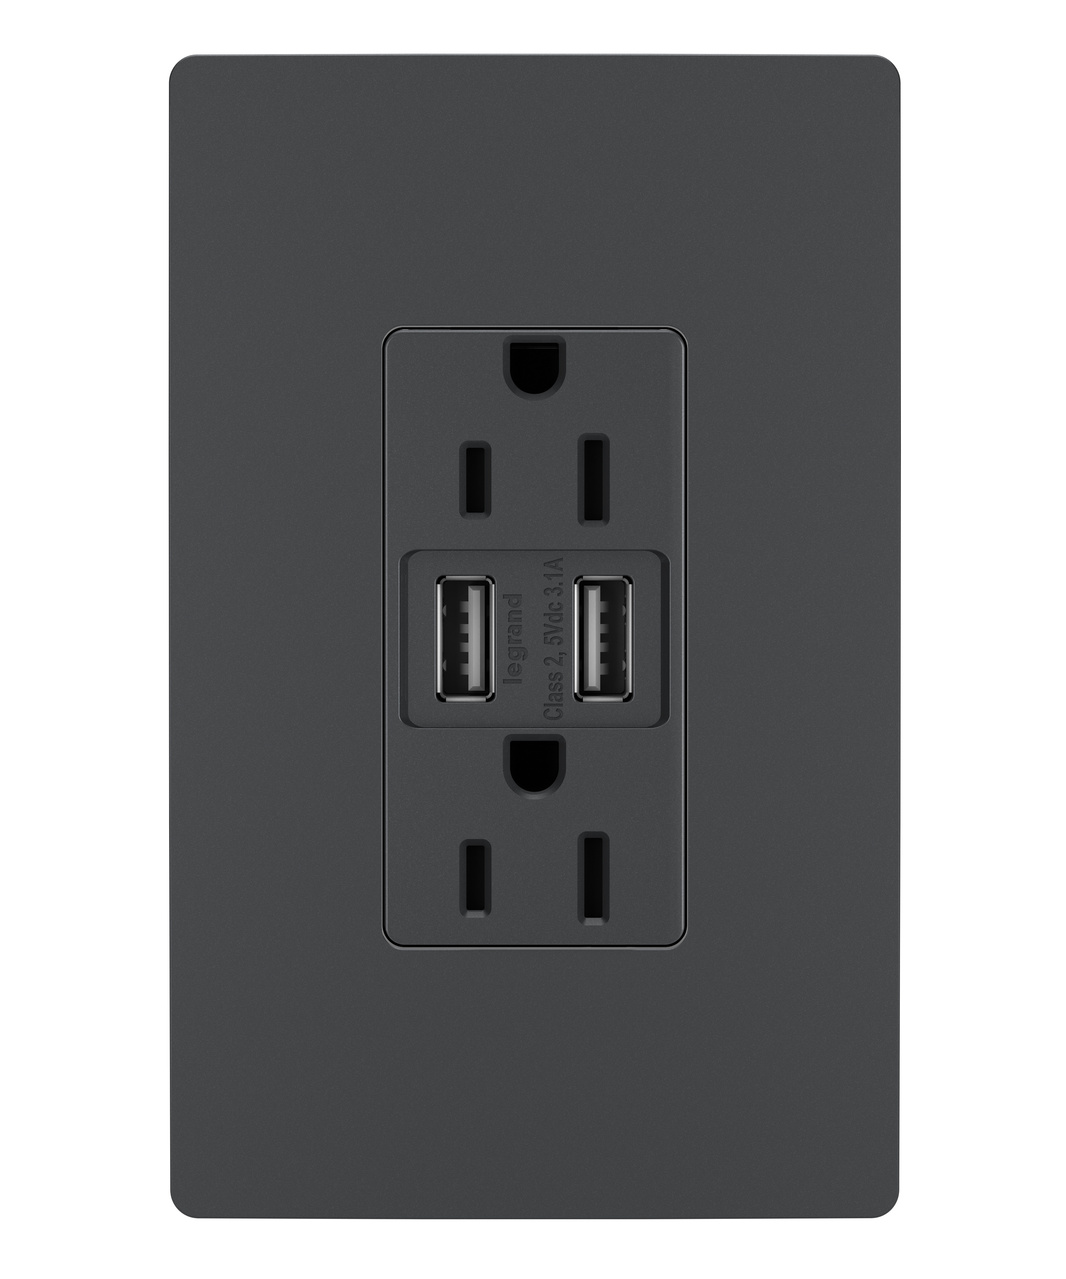 Usb Charger 15a Tamper Resistant Duplex Outlet Graphite Legrand